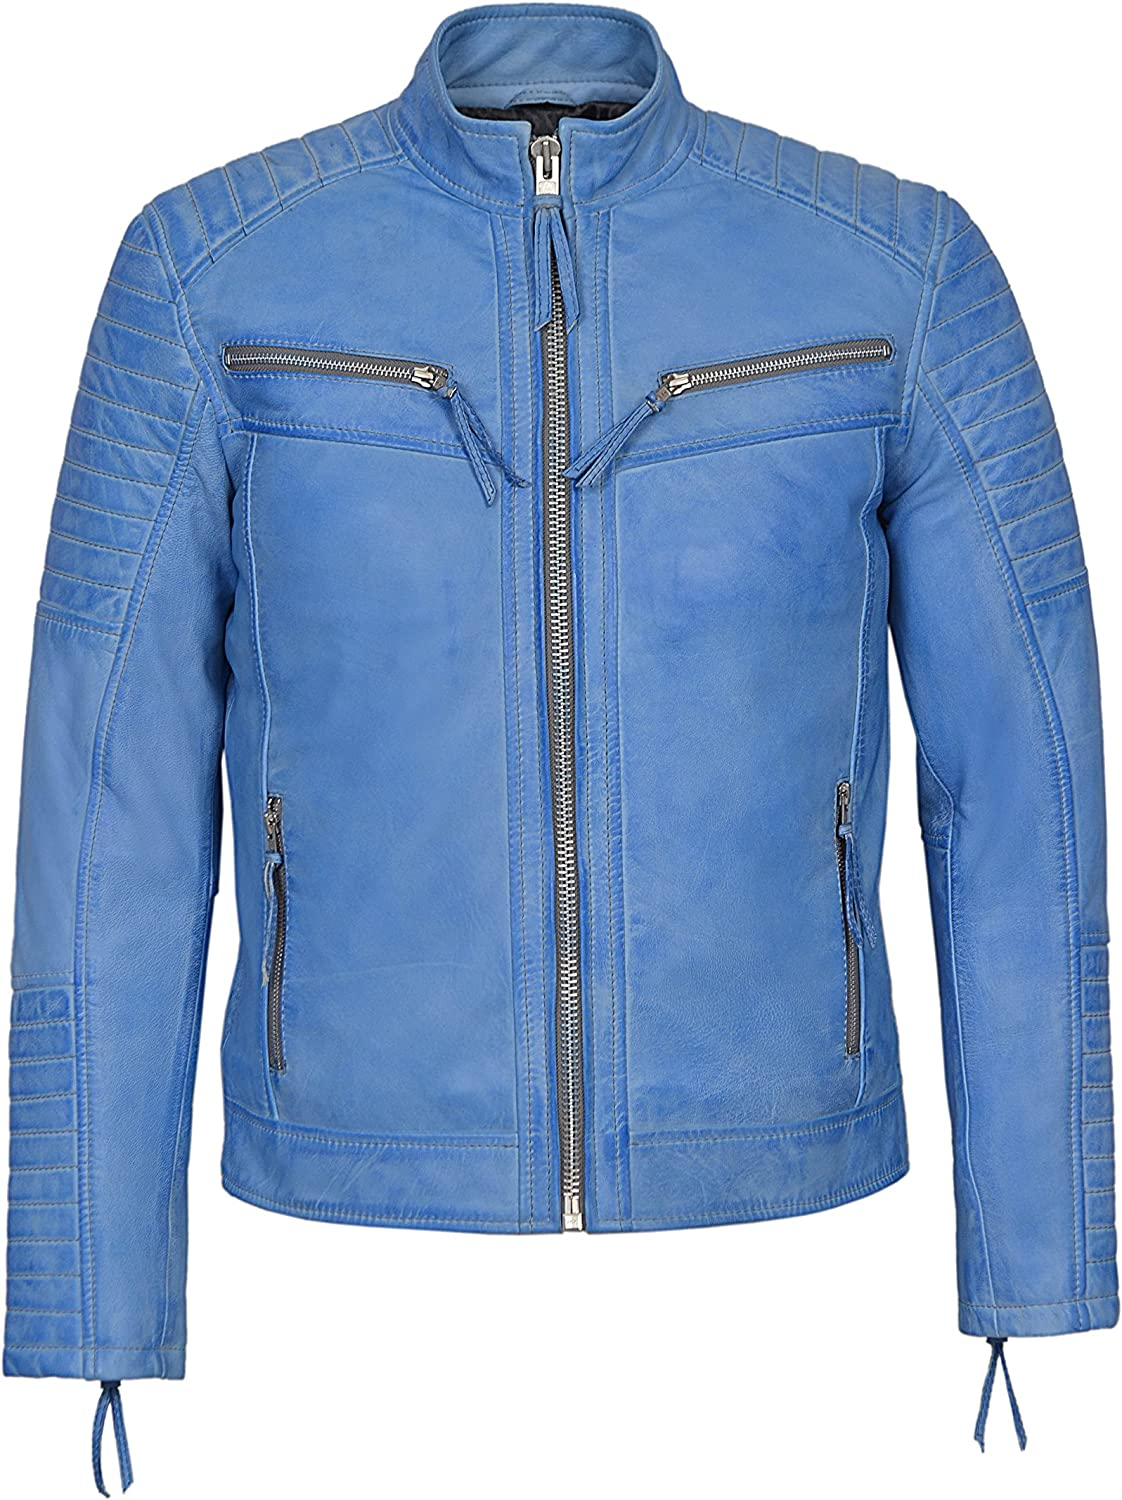 Mens New Blue Crust Napa Stitch Diamond Quilted Celebrity Lambskin Soft Leather 2565